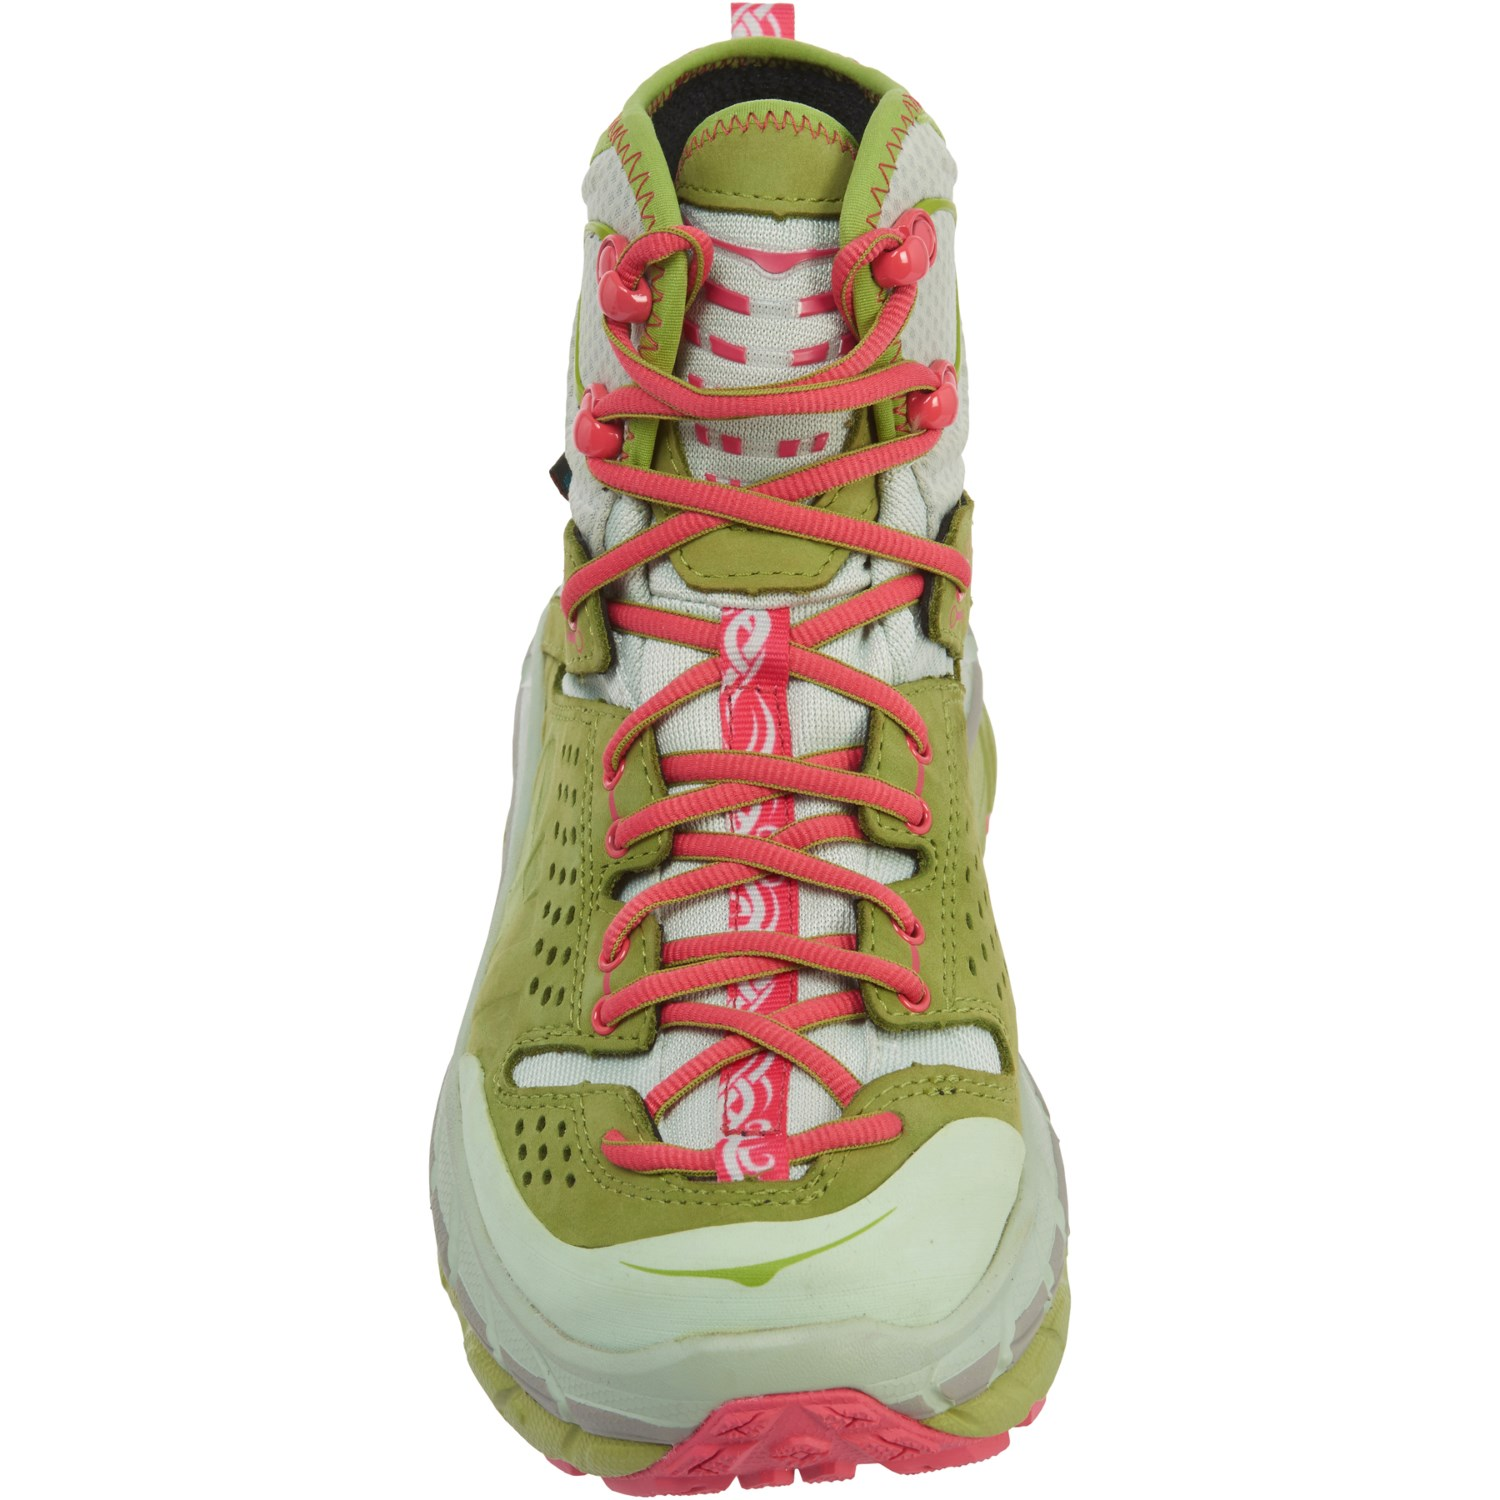 premium selection 9511e 981c3 Hoka One One Tor Ultra Hi Hiking Boots (For Women) - Save 23%